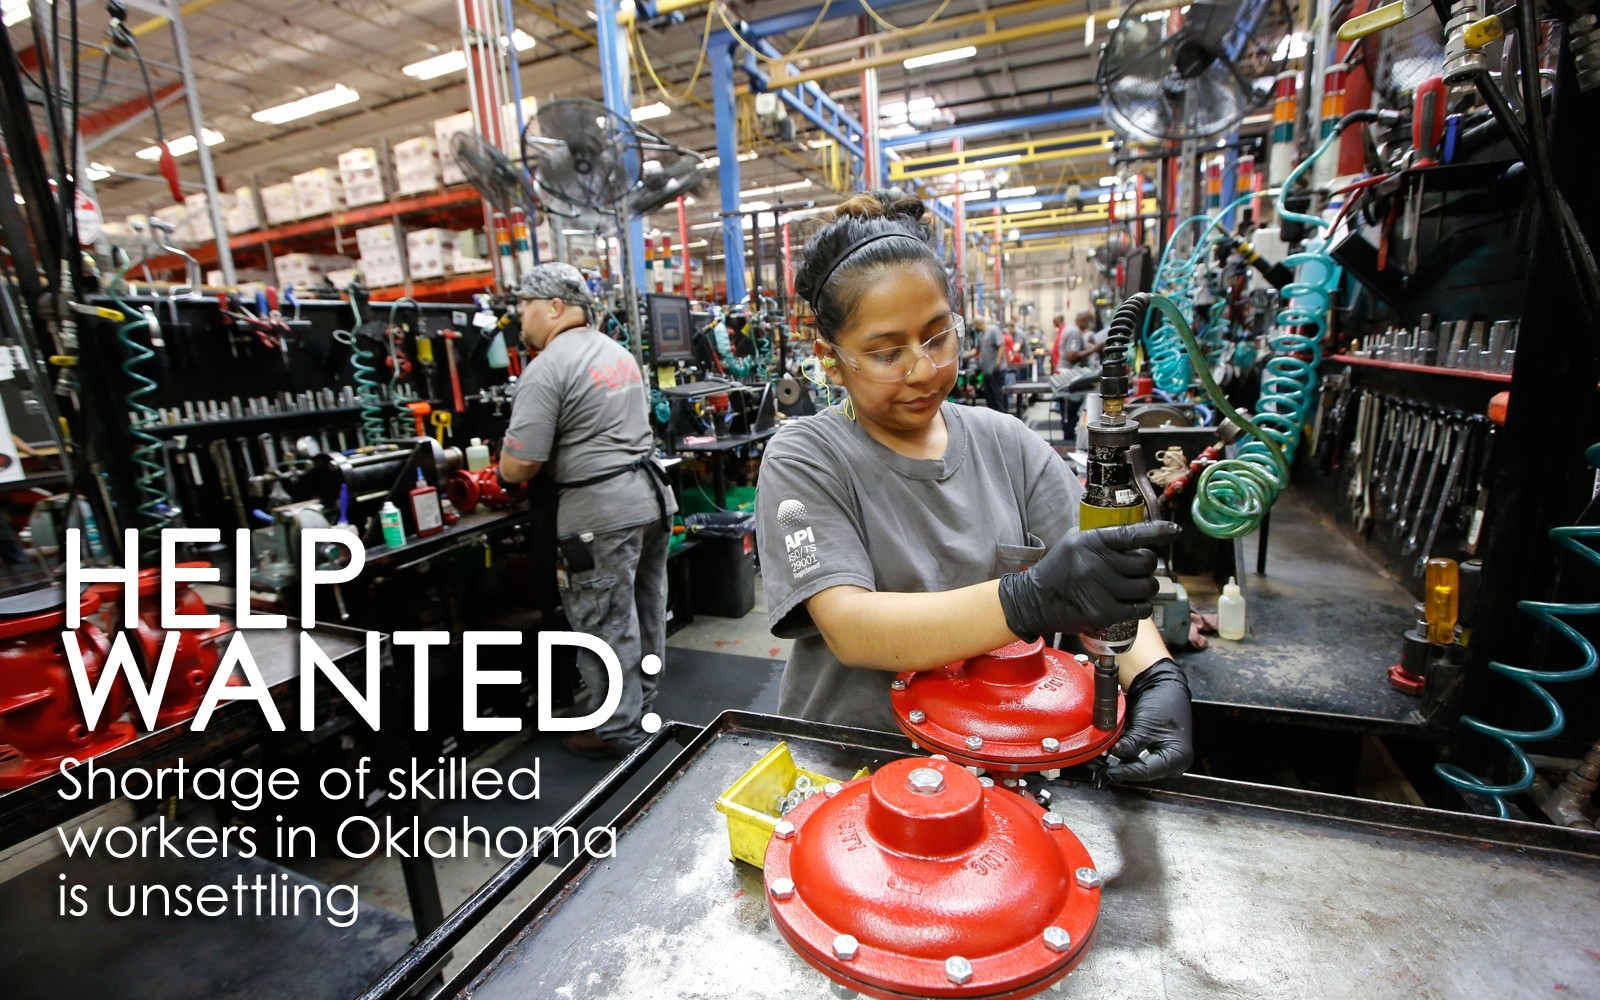 Help Wanted: Shortage Of Skilled Workers In Oklahoma Is Unsettling regarding Oklahoma City Help Wanted 46336